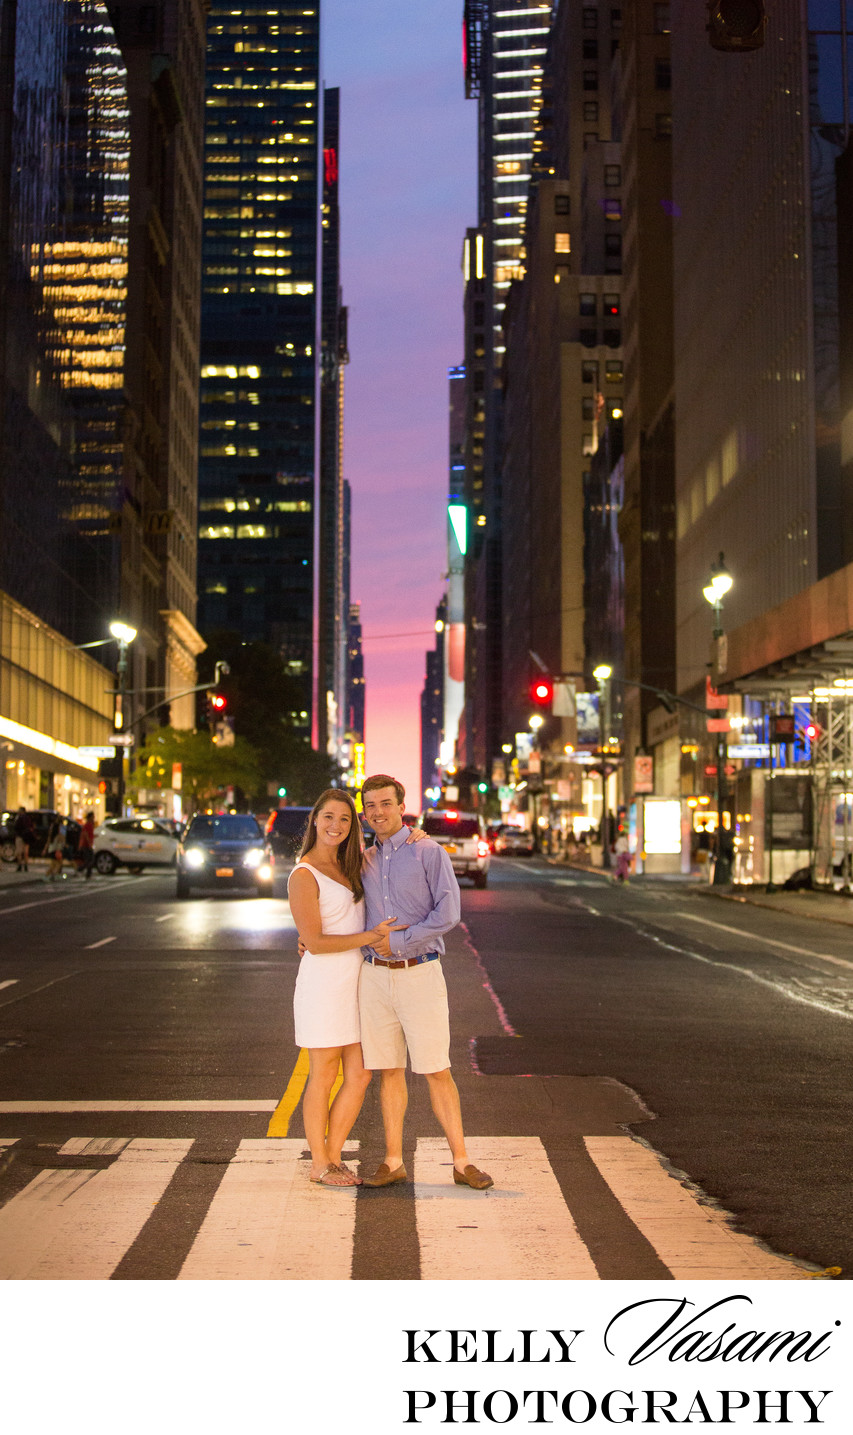 Engagement session on NYC streets at night